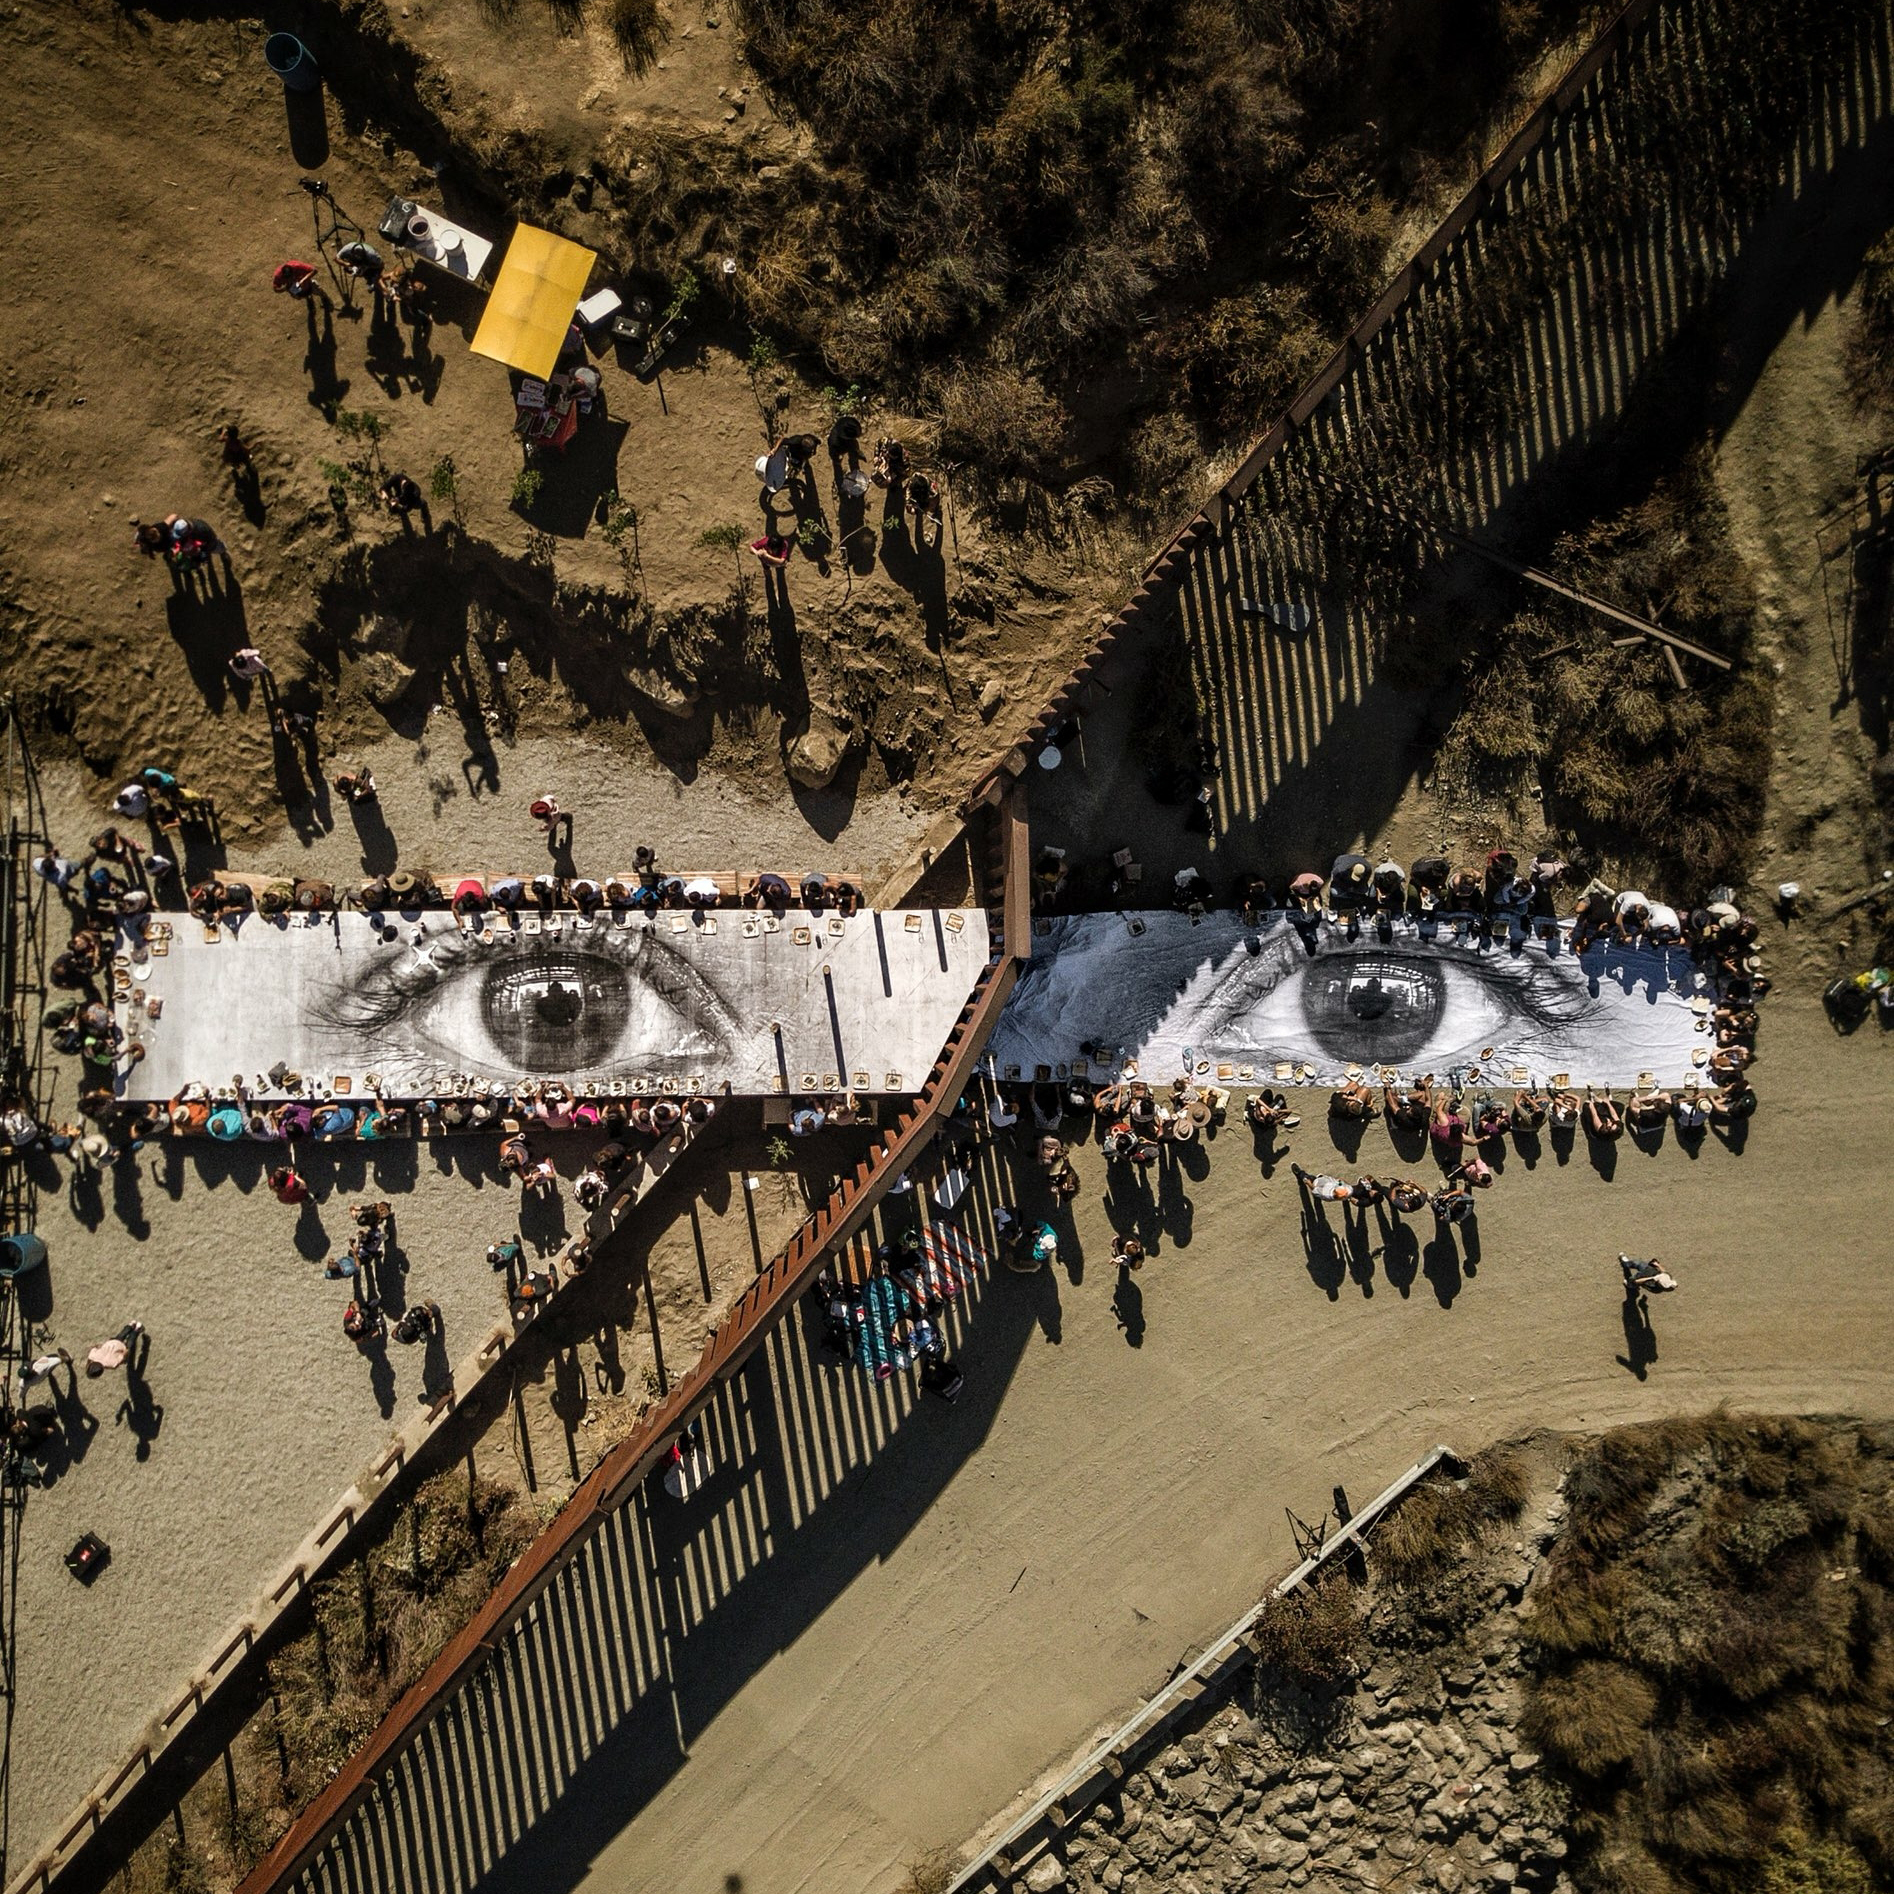 """This Overview shows a large picnic at US-Mexico border, spanning from Tecate, California, USA, to Tecate, Baja California, Mexico. The meal is being eaten atop """"the eyes of a Dreamer,"""" a mural painted by French artist """"JR"""" for the one-day-only installation in October 2017. The eyes depicted in the mural are those of a Deferred Action for Childhood Arrivals (DACA) recipient.  32°34'34.1""""N, 116°37'45.8""""W  Source imagery: JR"""